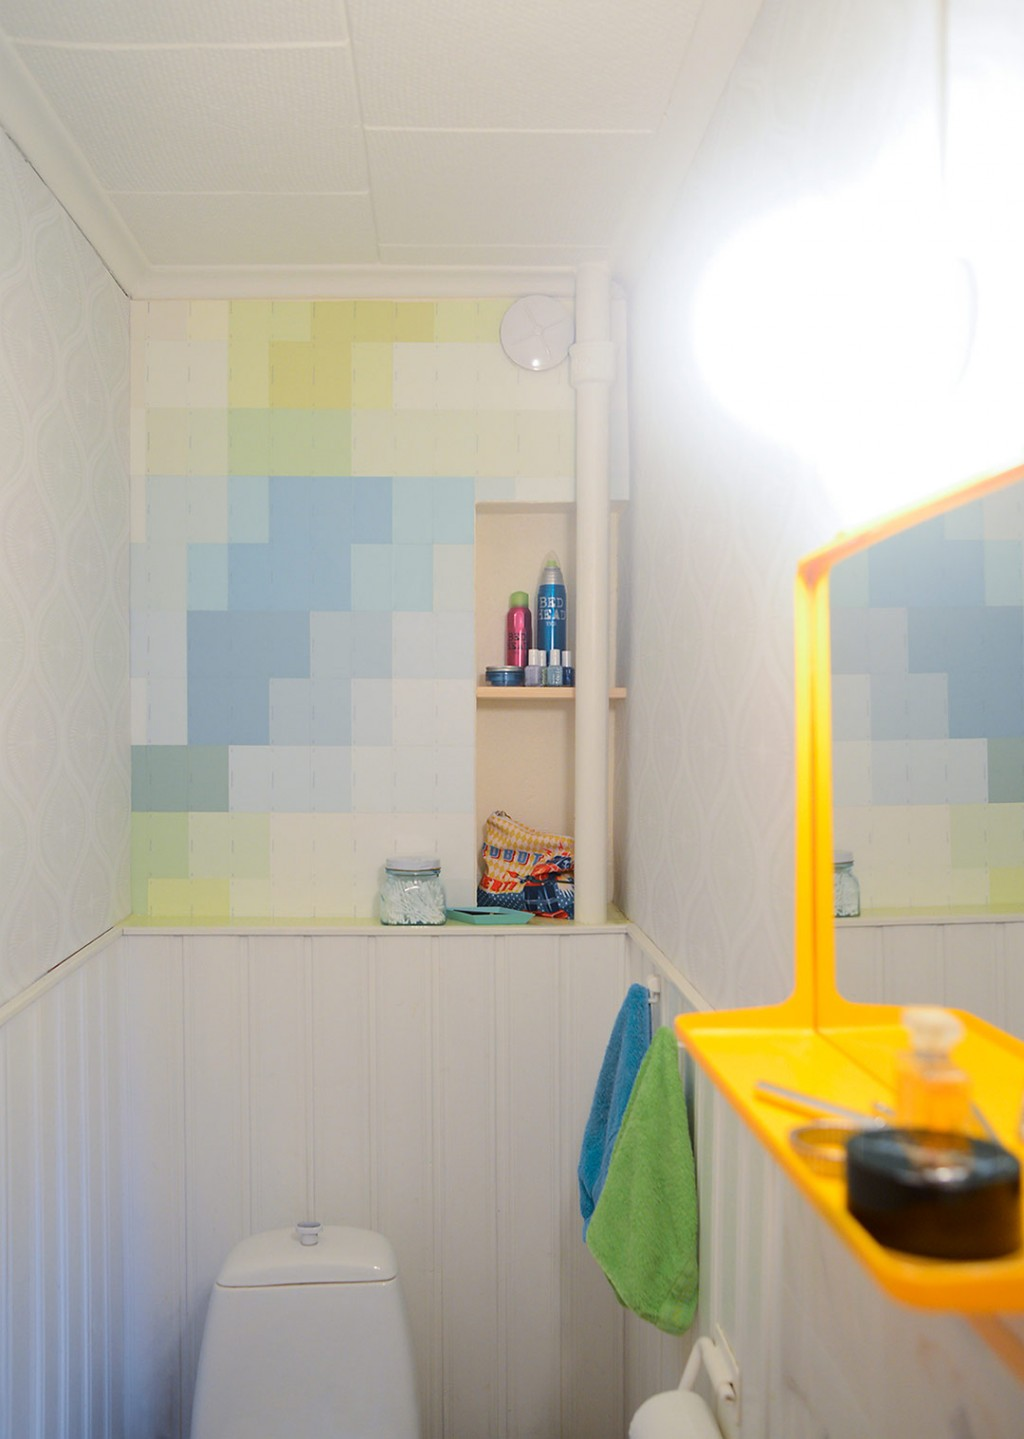 Paint Swatches as Wallpaper